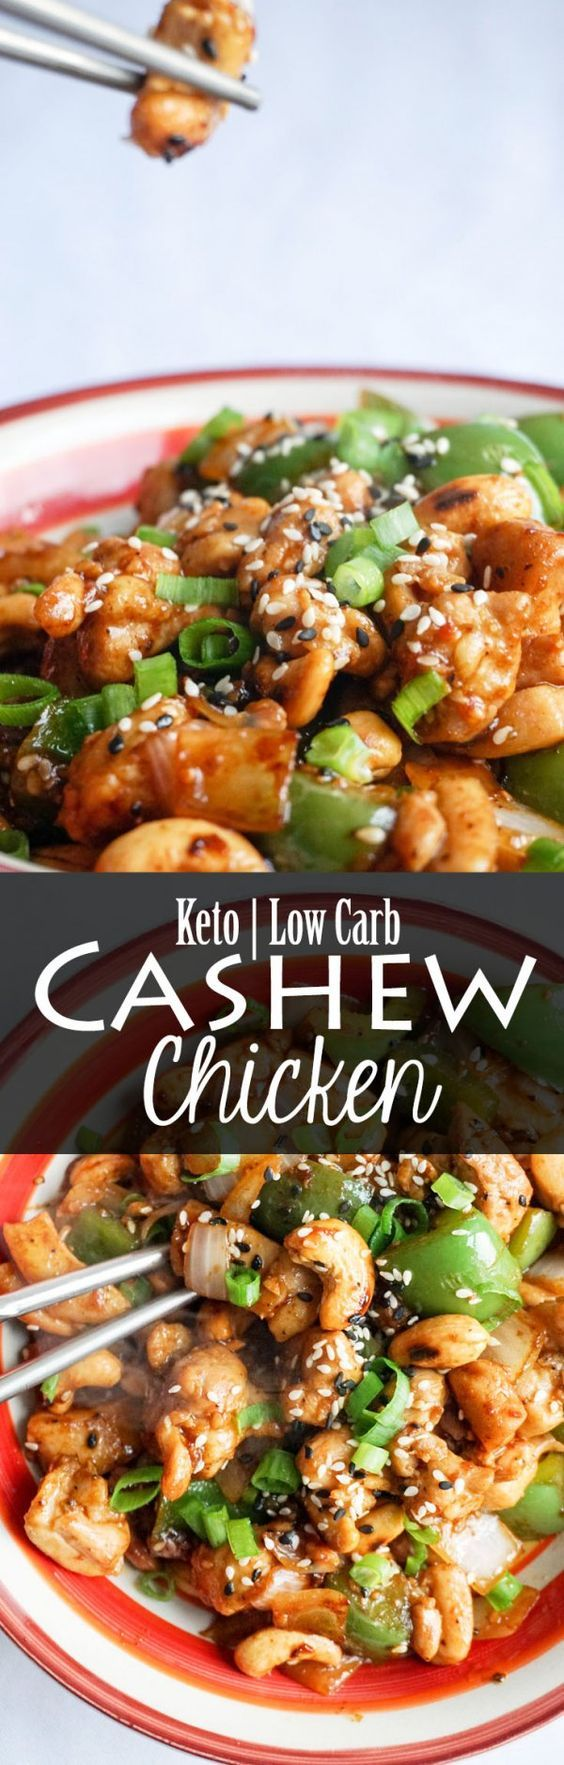 39 Keto Chicken Recipes That Are Super High Protein Low Carb